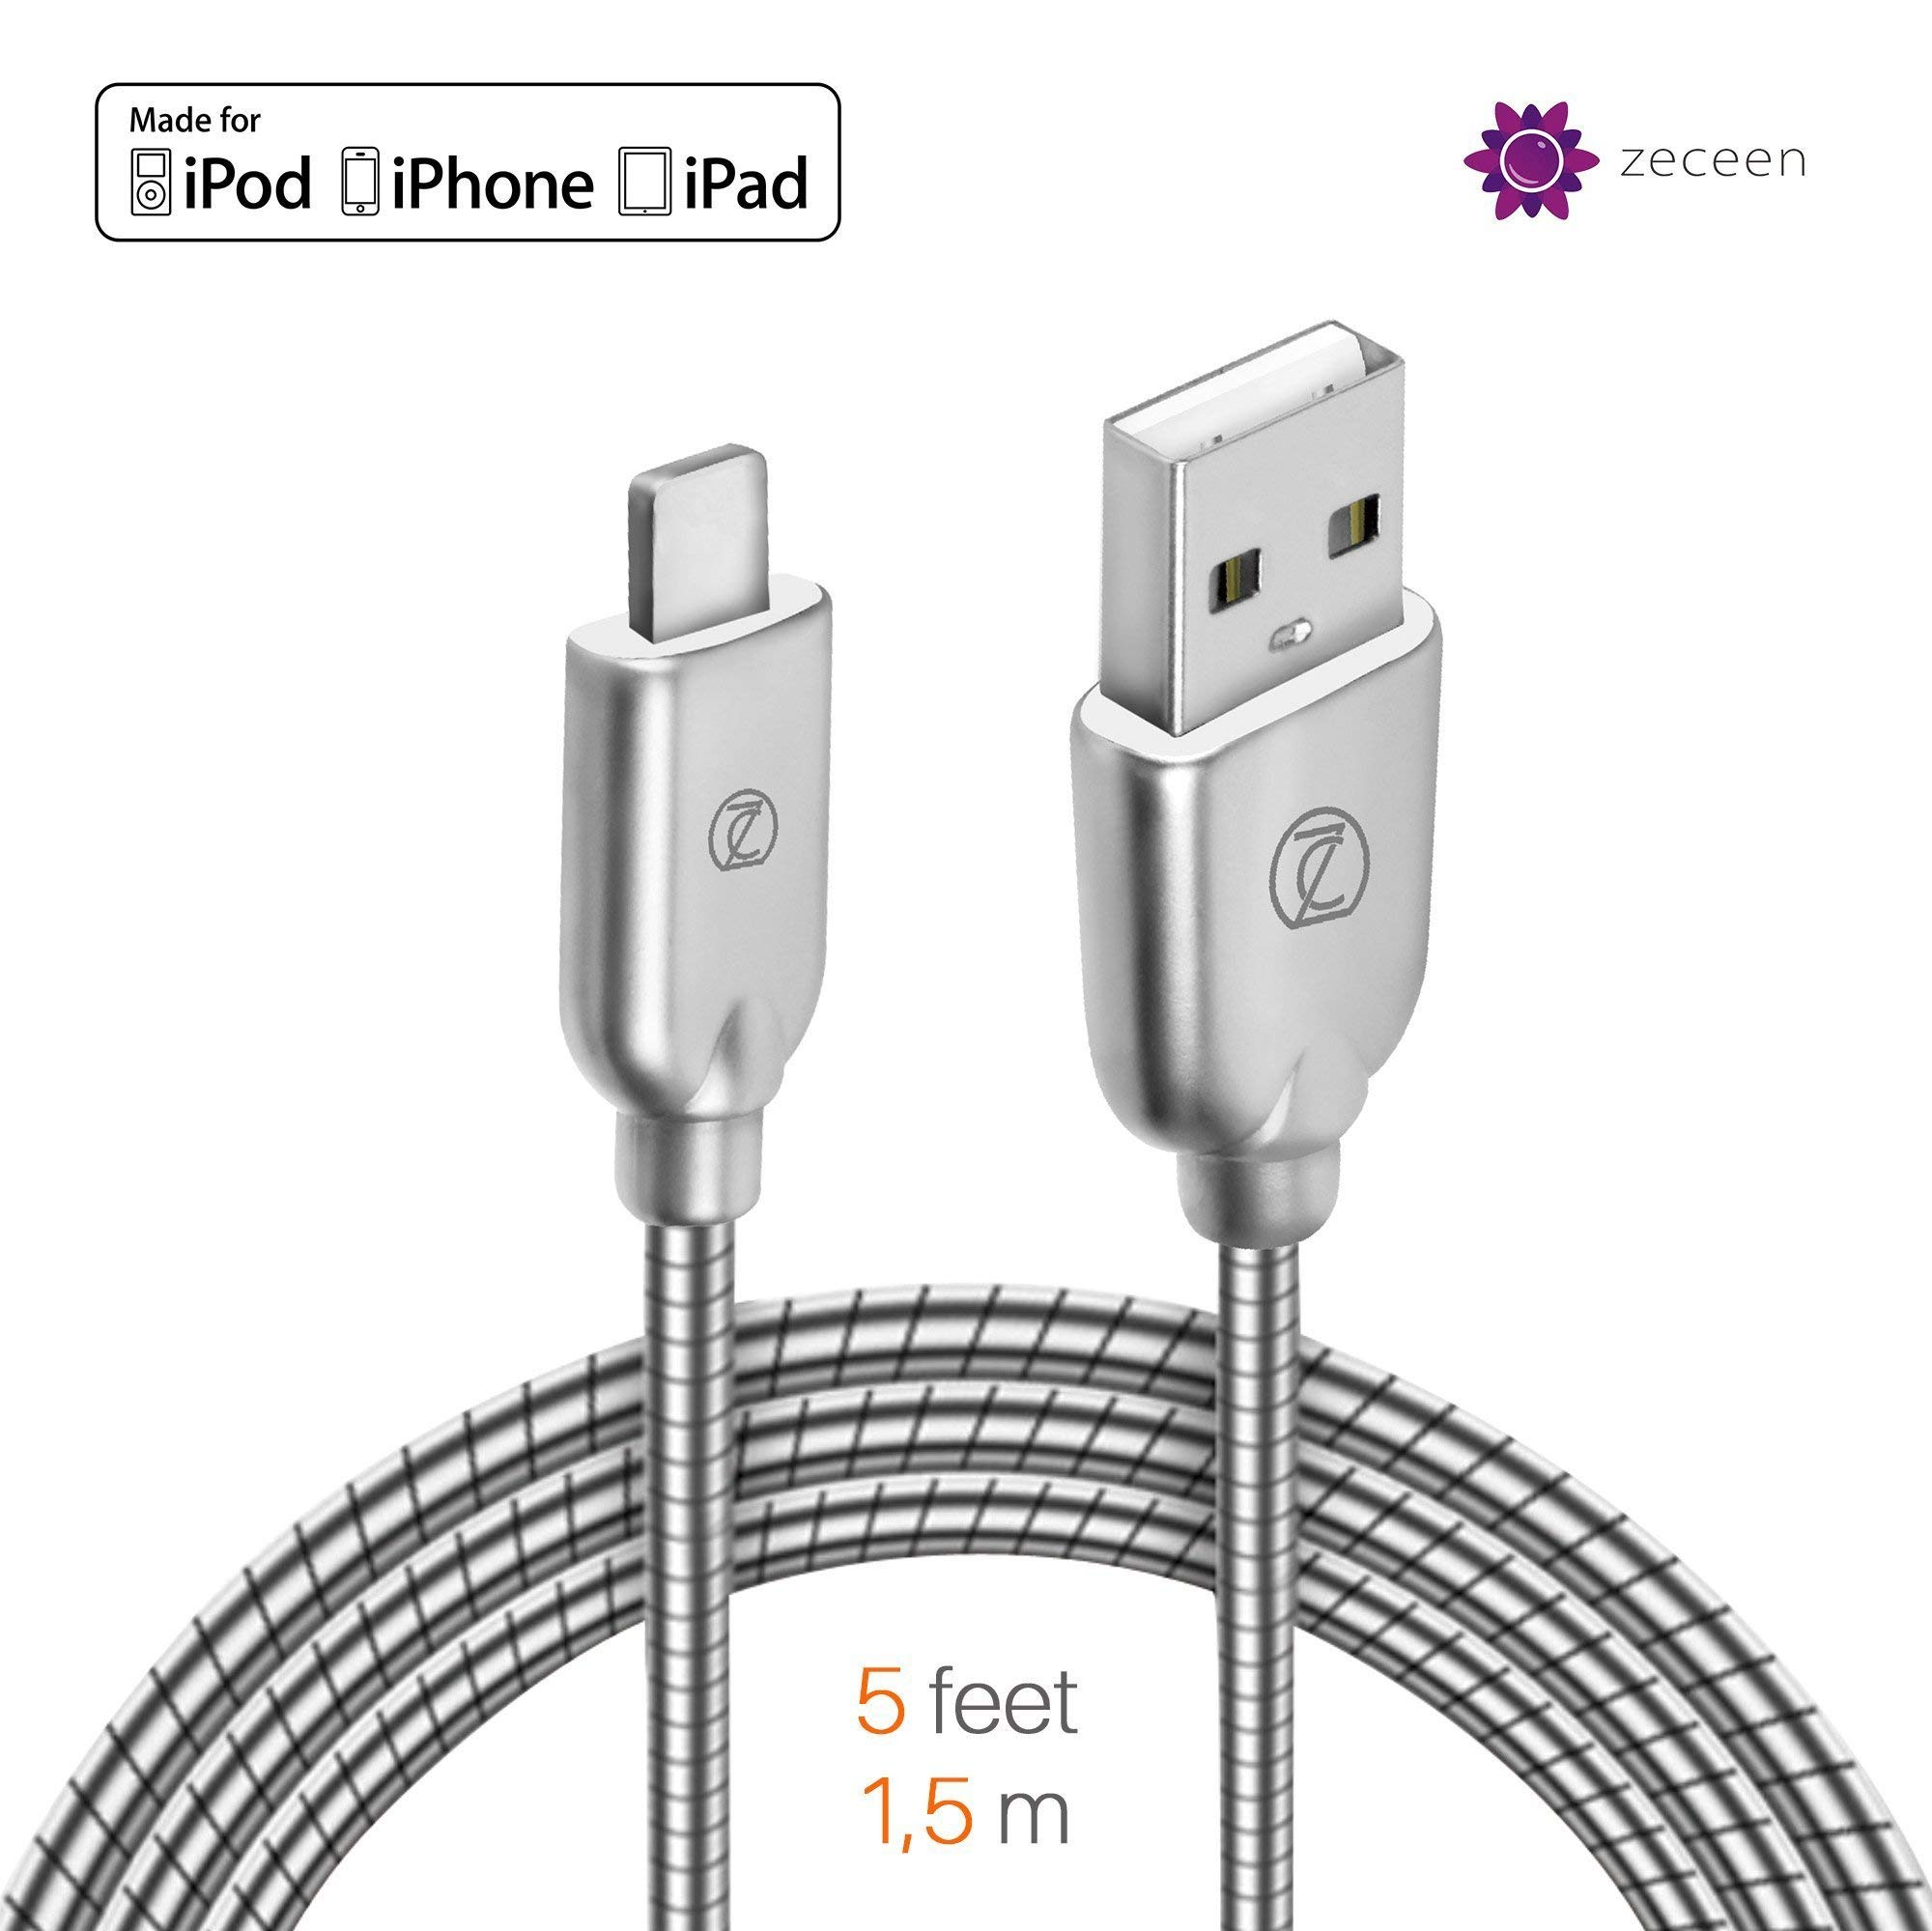 ZECEEN Metal USB Lightning Cable – Fast Charging & Data Transfer Cord (5 ft) – Almost Unbreakable – Bending & Weather Resistant – Compatible with iPhone X/8/7/6s/6/5s/5/SE, iPad Pro/Air/Mini